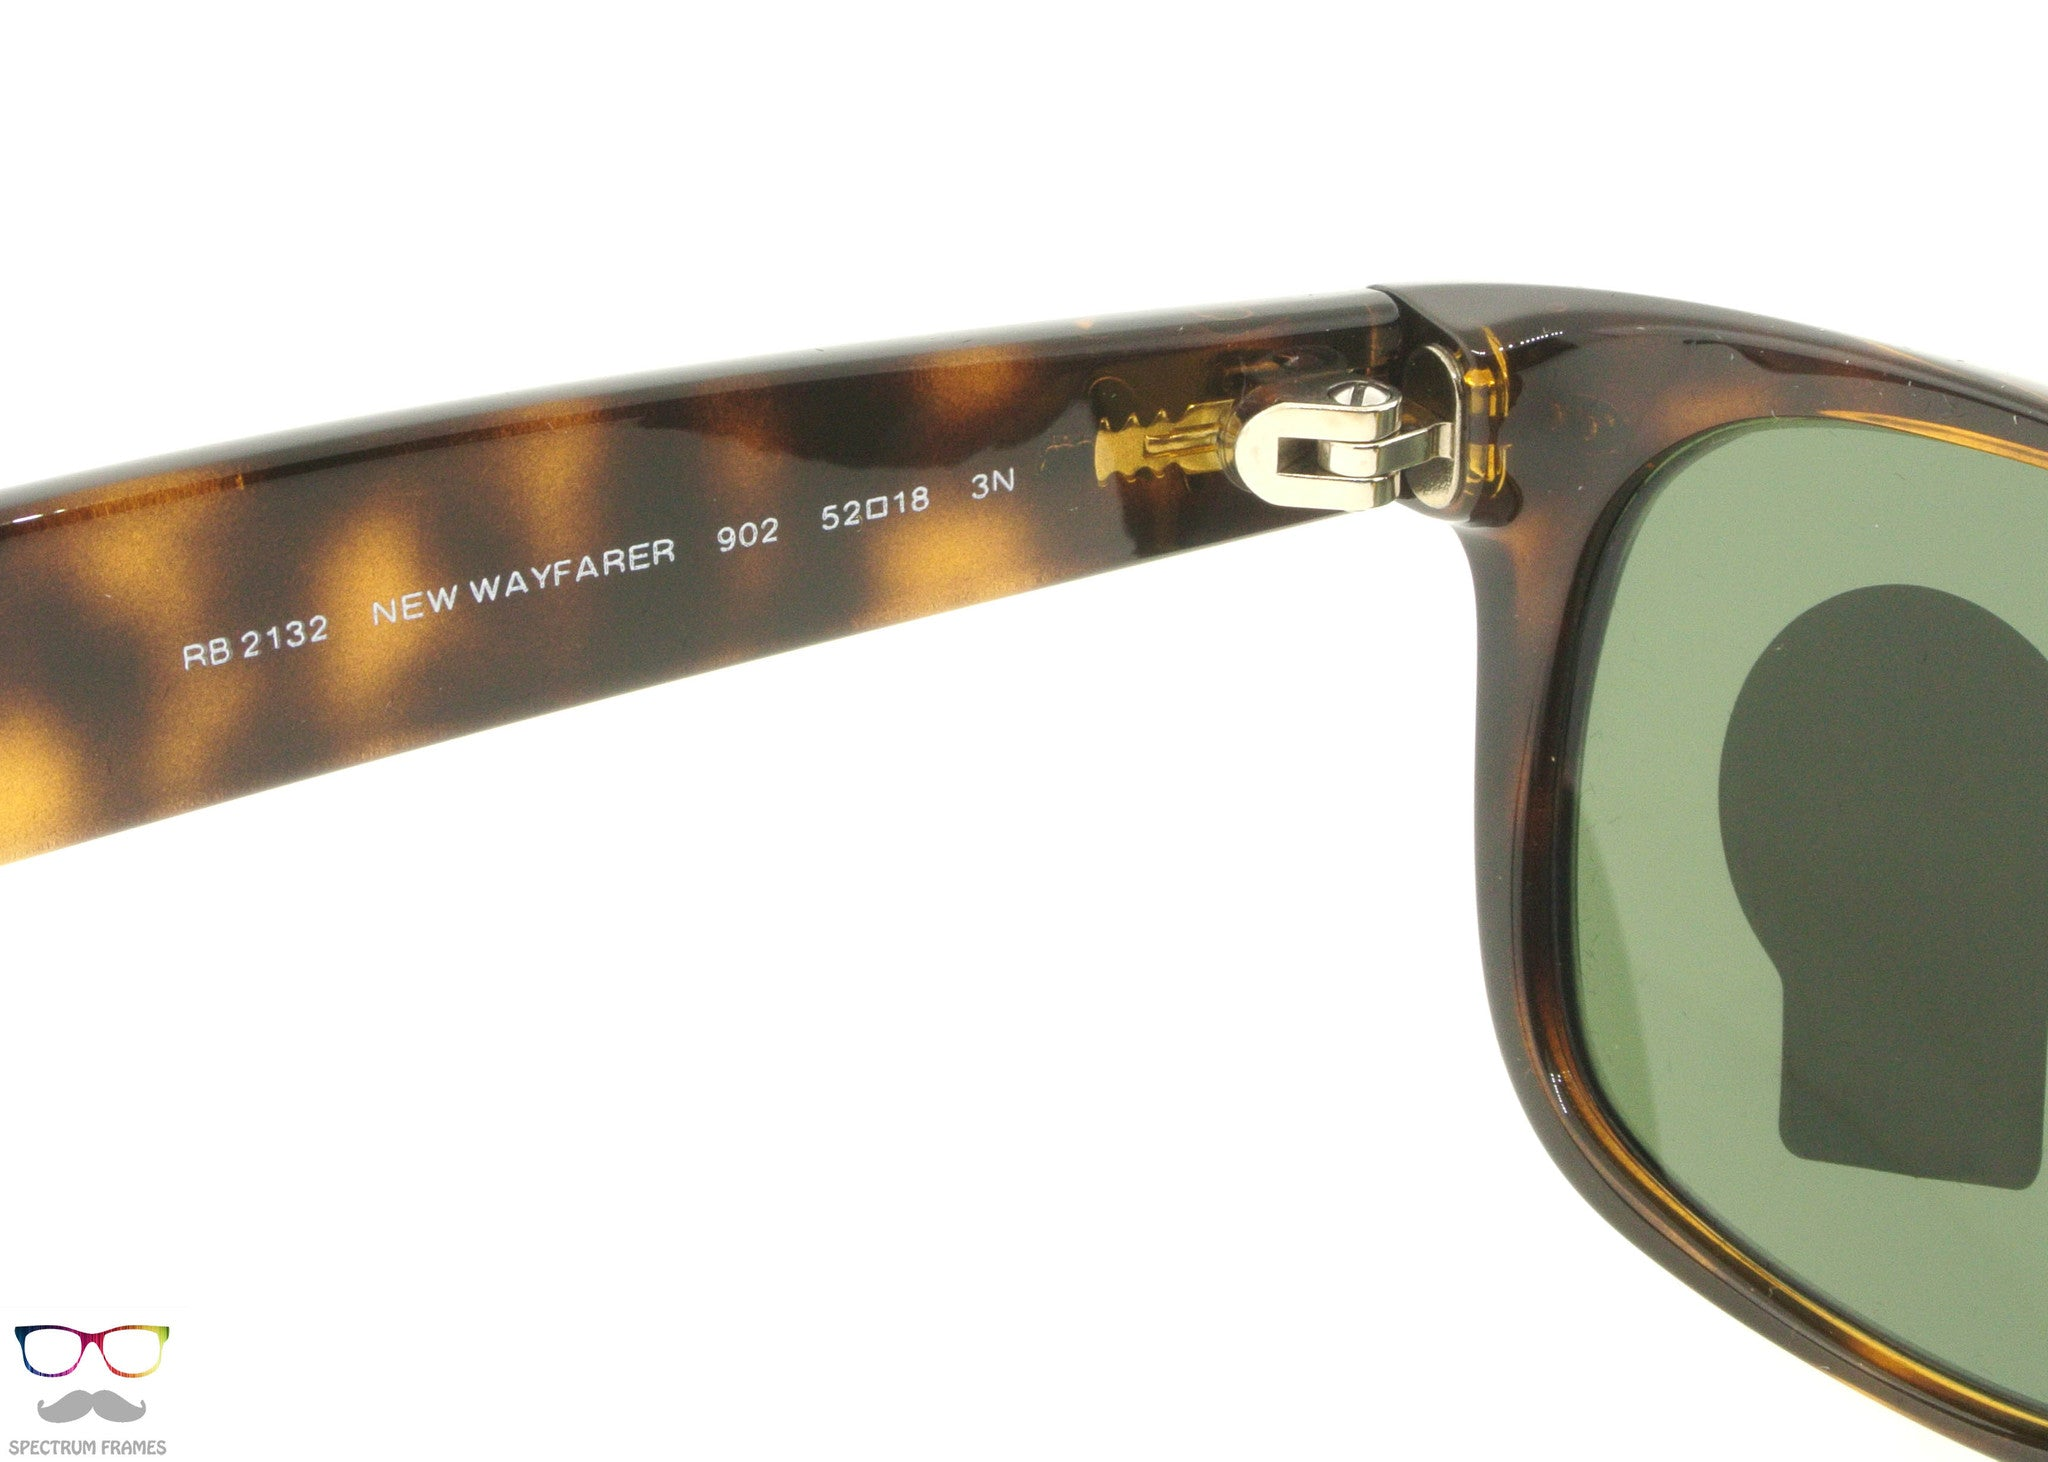 ... Ray Ban Sunglasses RB 2132 902 Tortoise with Green G15 Lens Size 52 ... 96905e675fb2